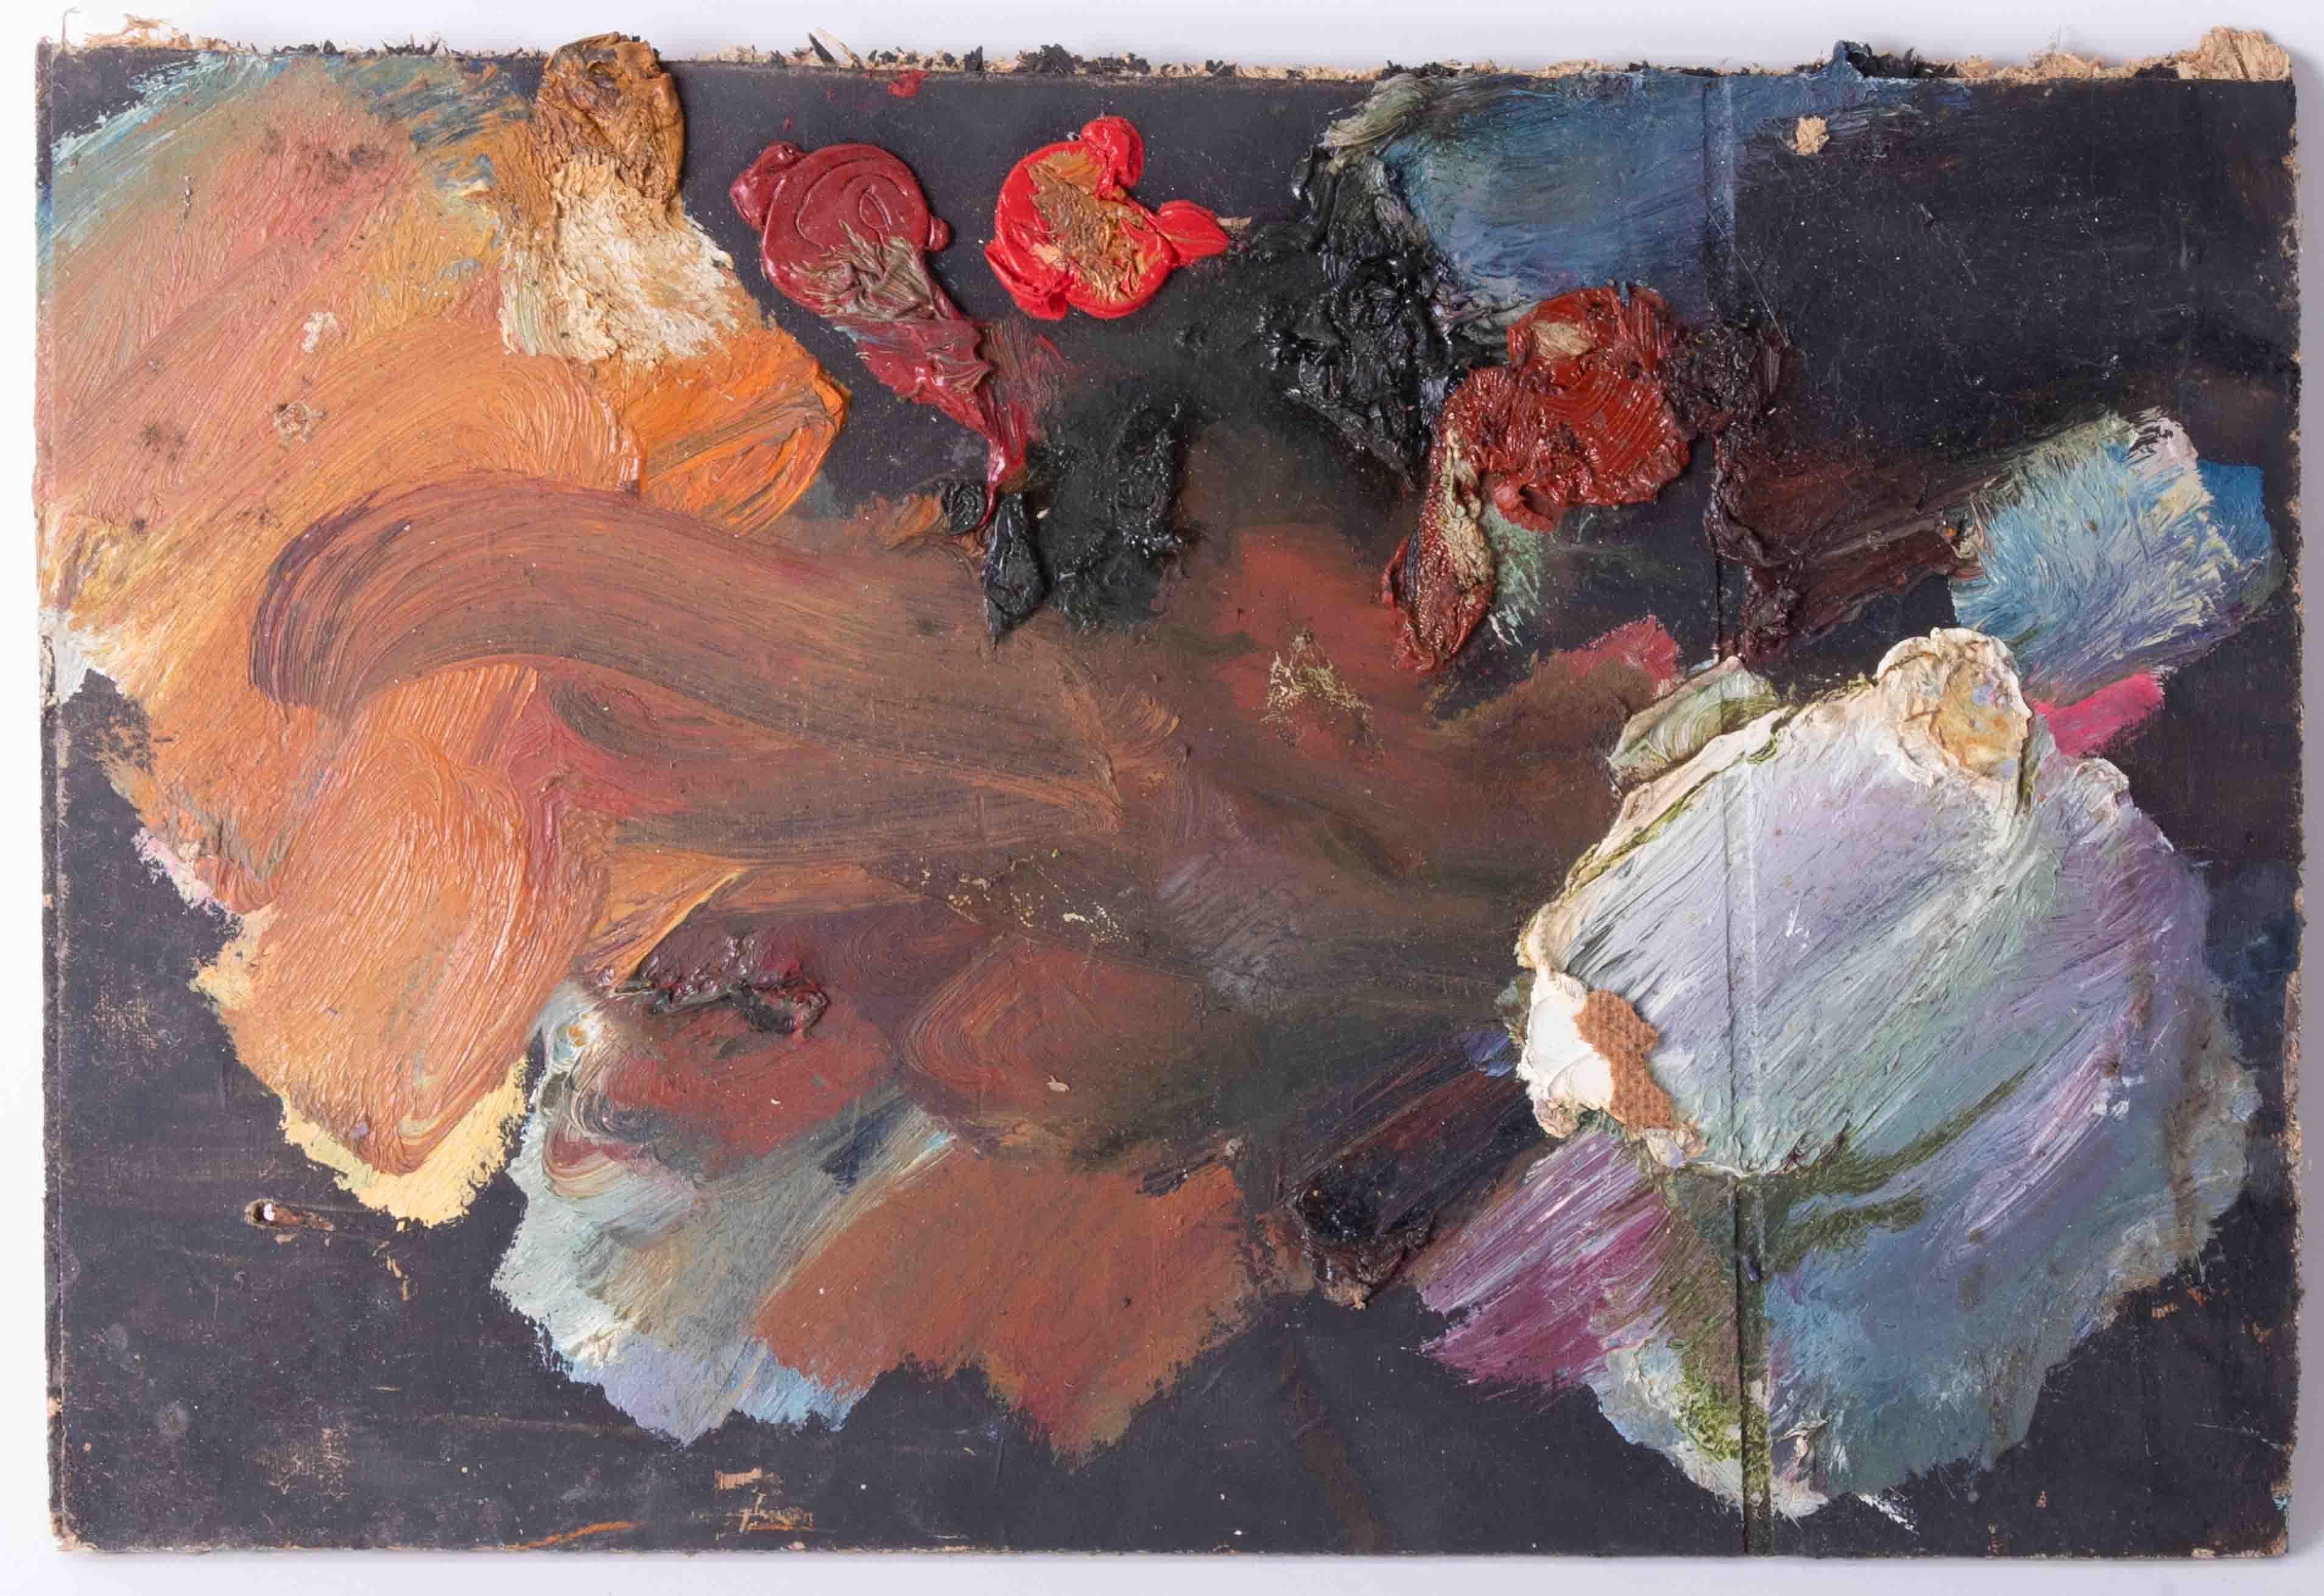 Robert Lenkiewicz (1941-2002) four artist palettes, unframed, Provenance, from a private studio that - Image 3 of 5